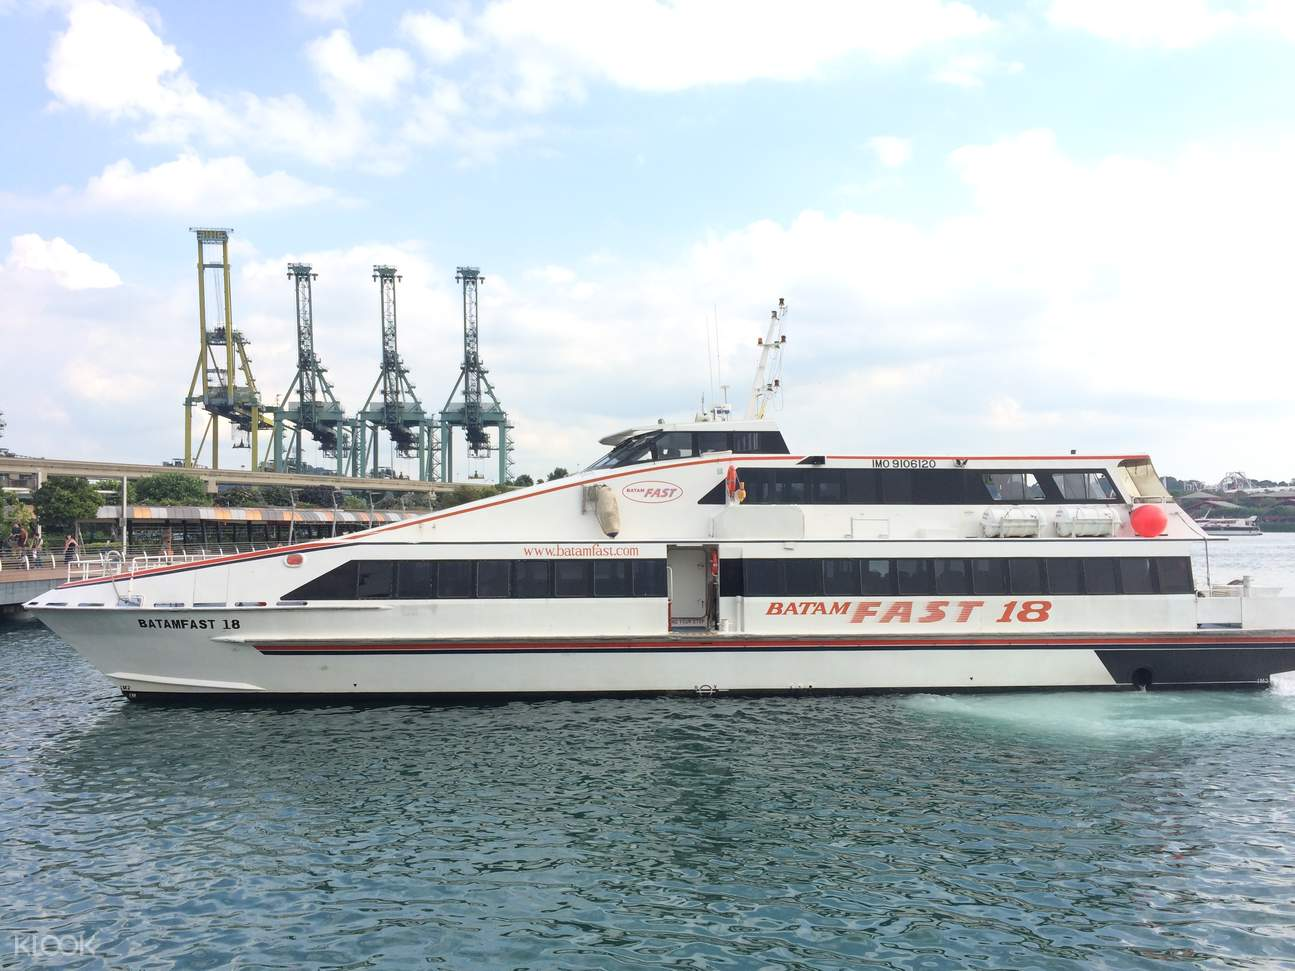 batam fast ferry harbourfront centre